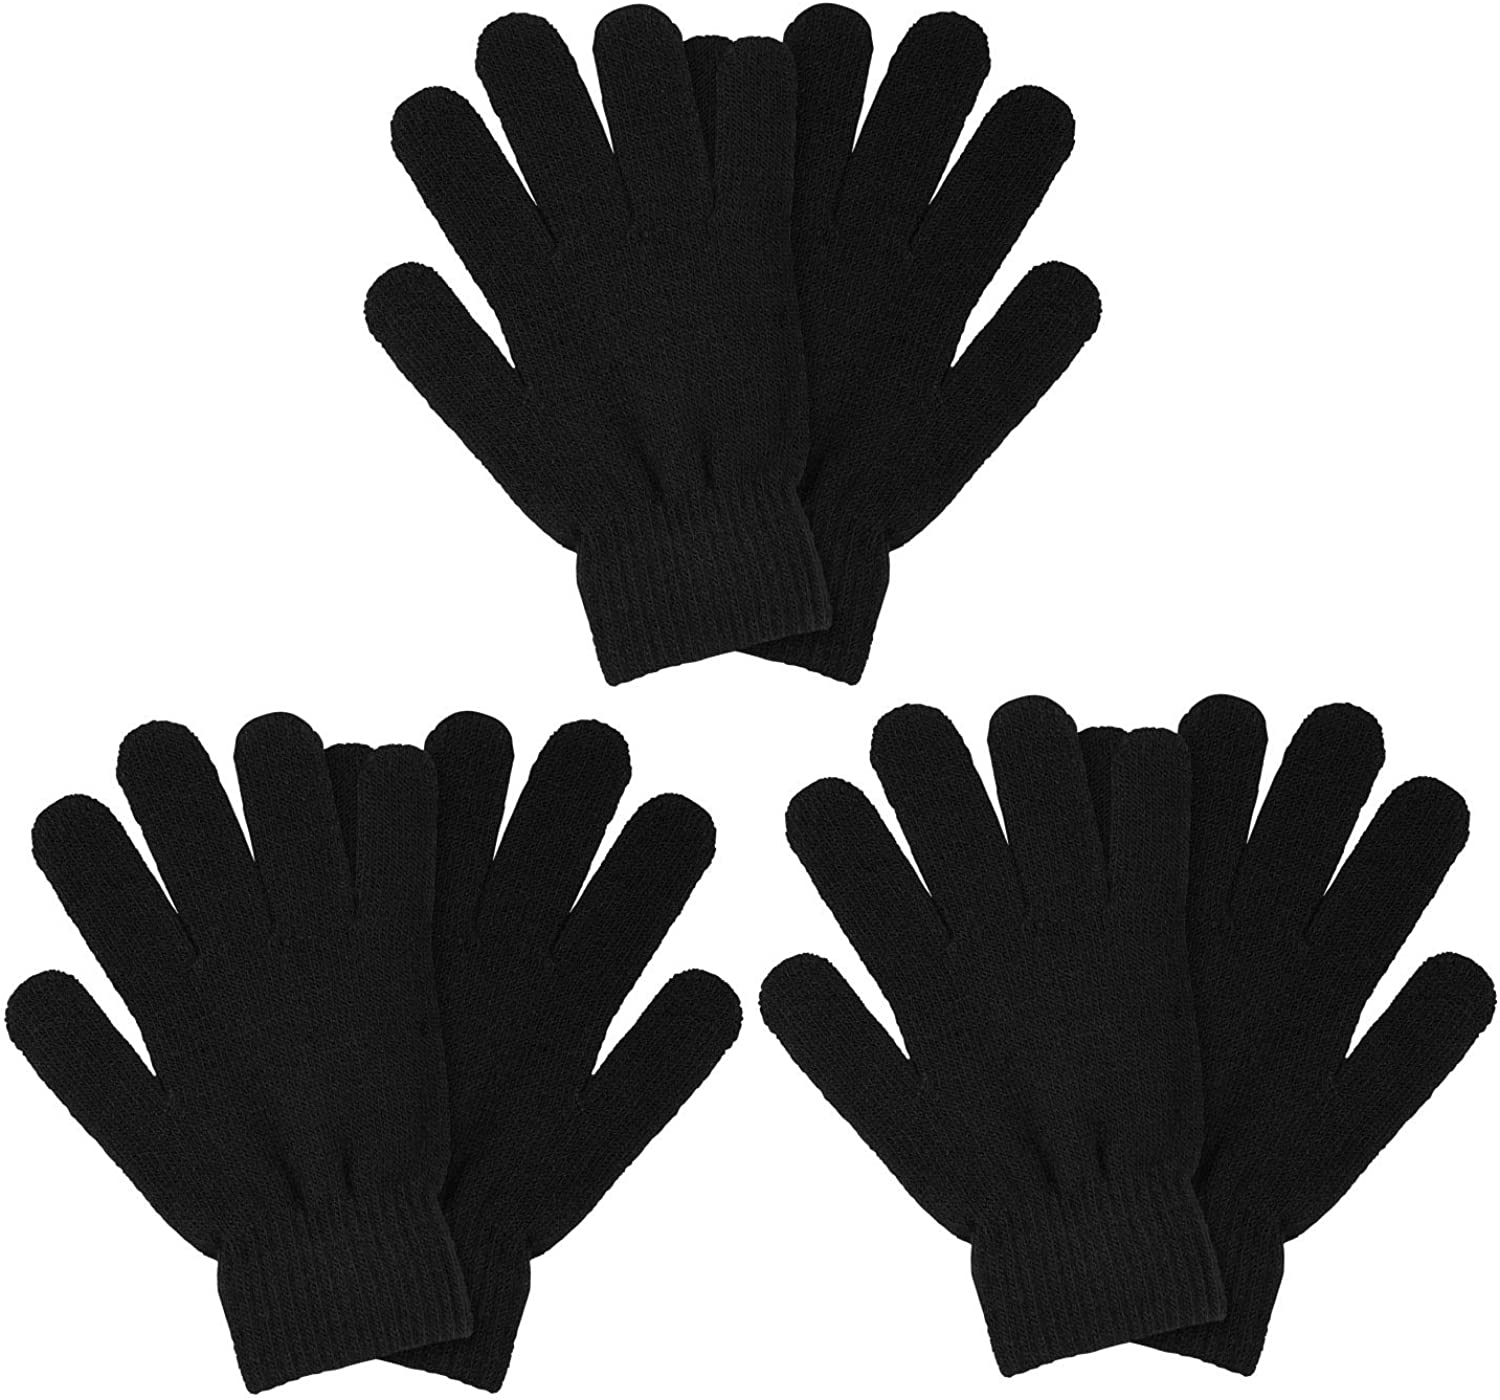 MENOLY 3 Pairs Winter Magic Gloves Adult Knit Gloves Warm Stretchy Knit Gloves One Size Fits Men Women Teens, Black